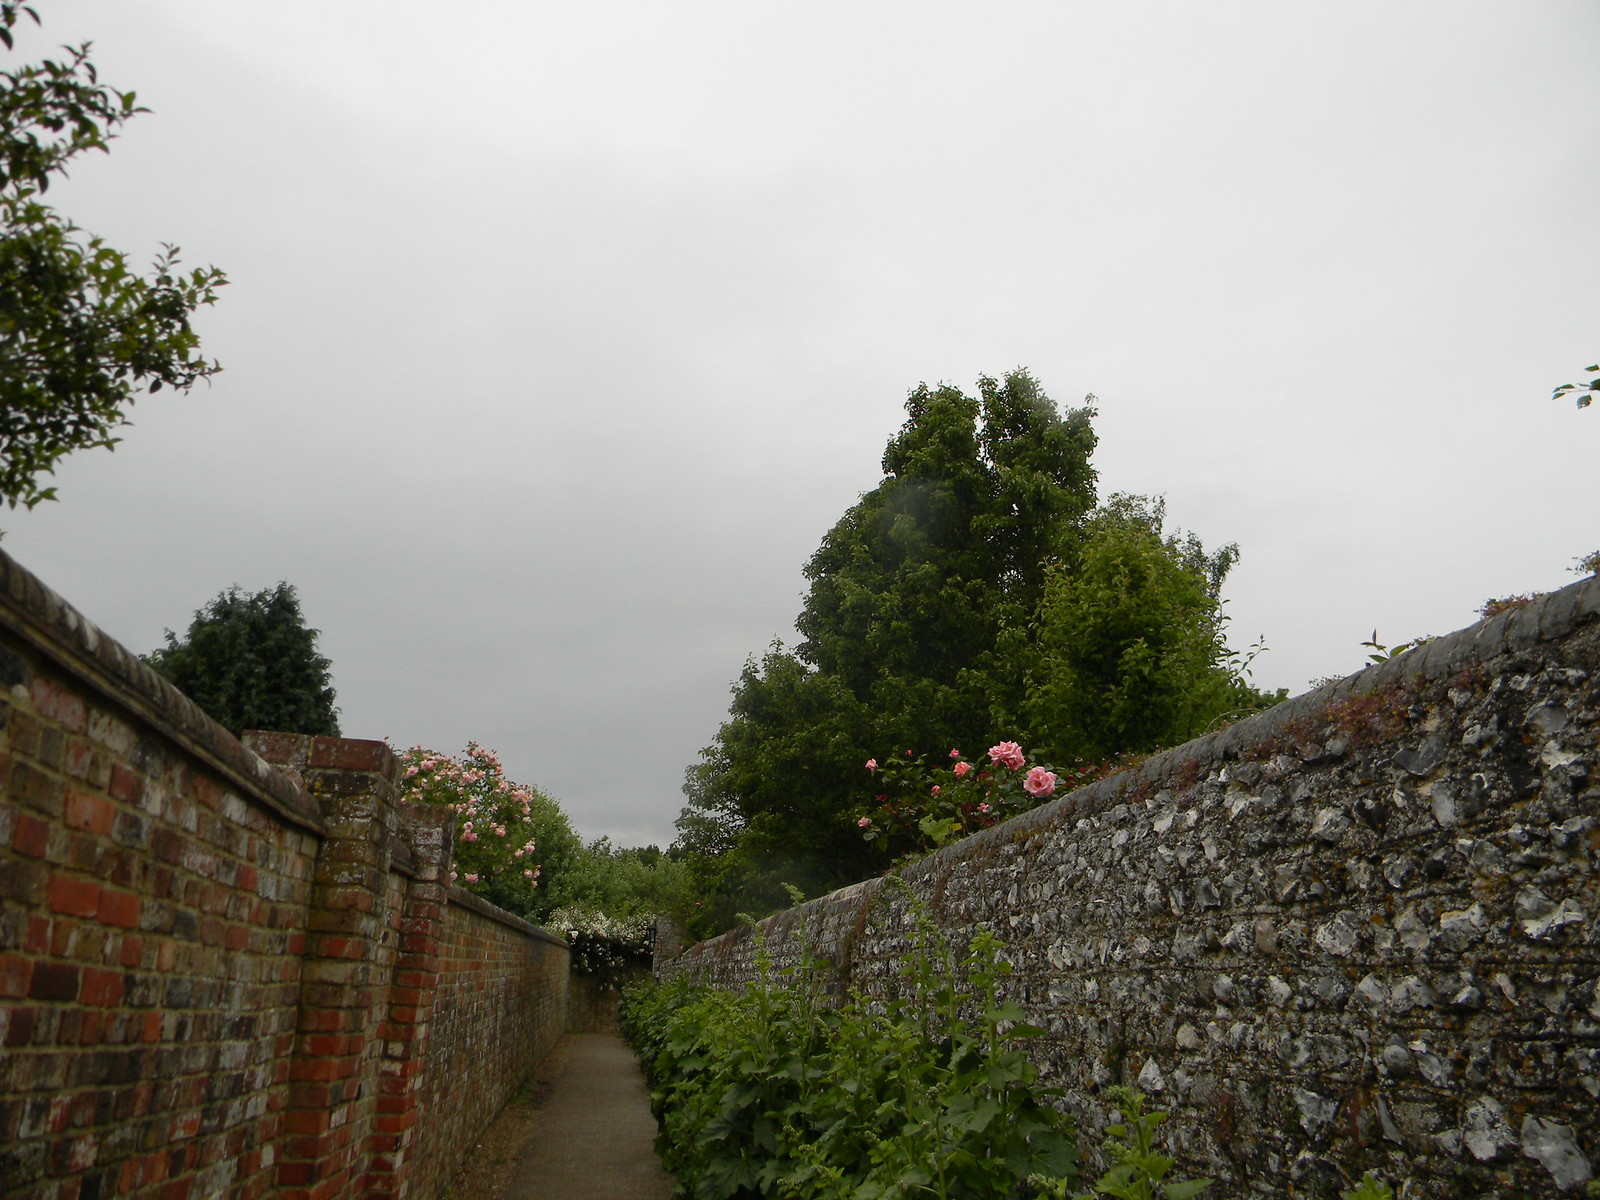 Walled path - Berwick church Lewes to Berwick